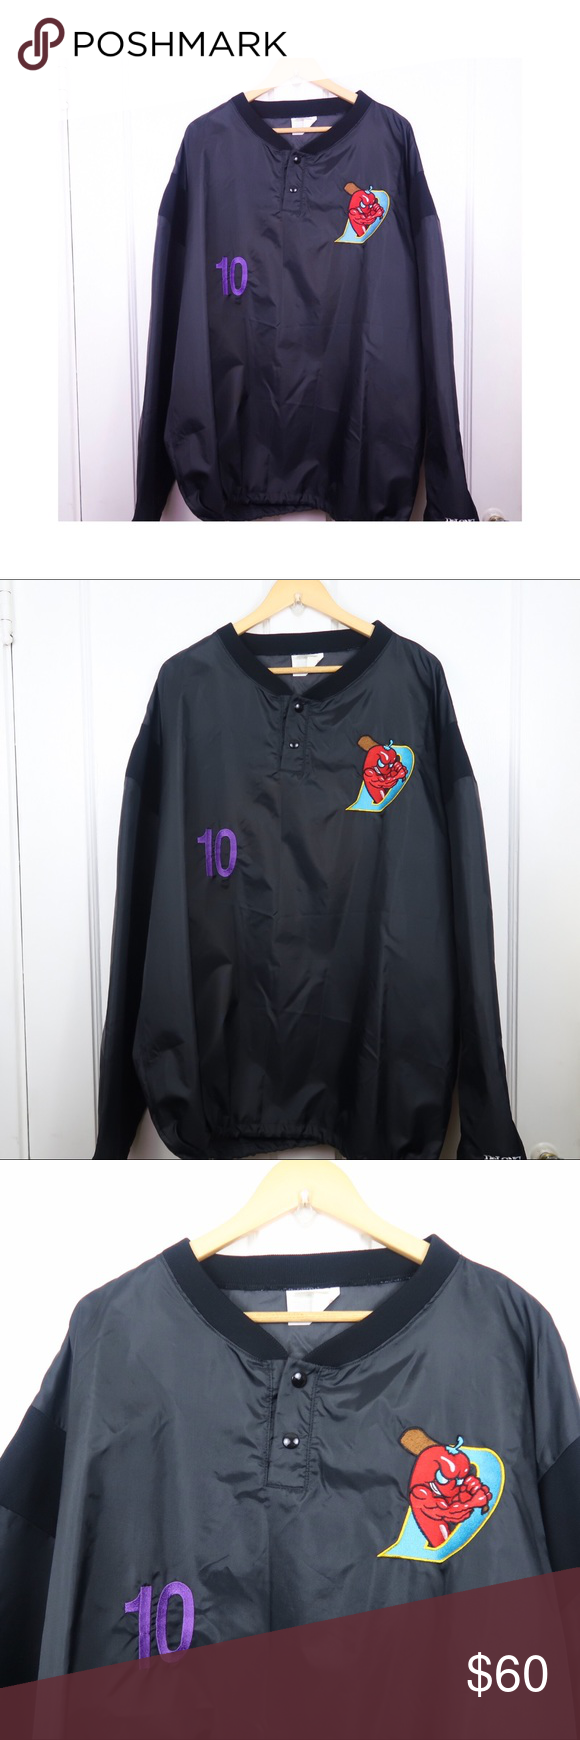 Black Red Hot Pepper Sports Fashion Jacket Size XL Black